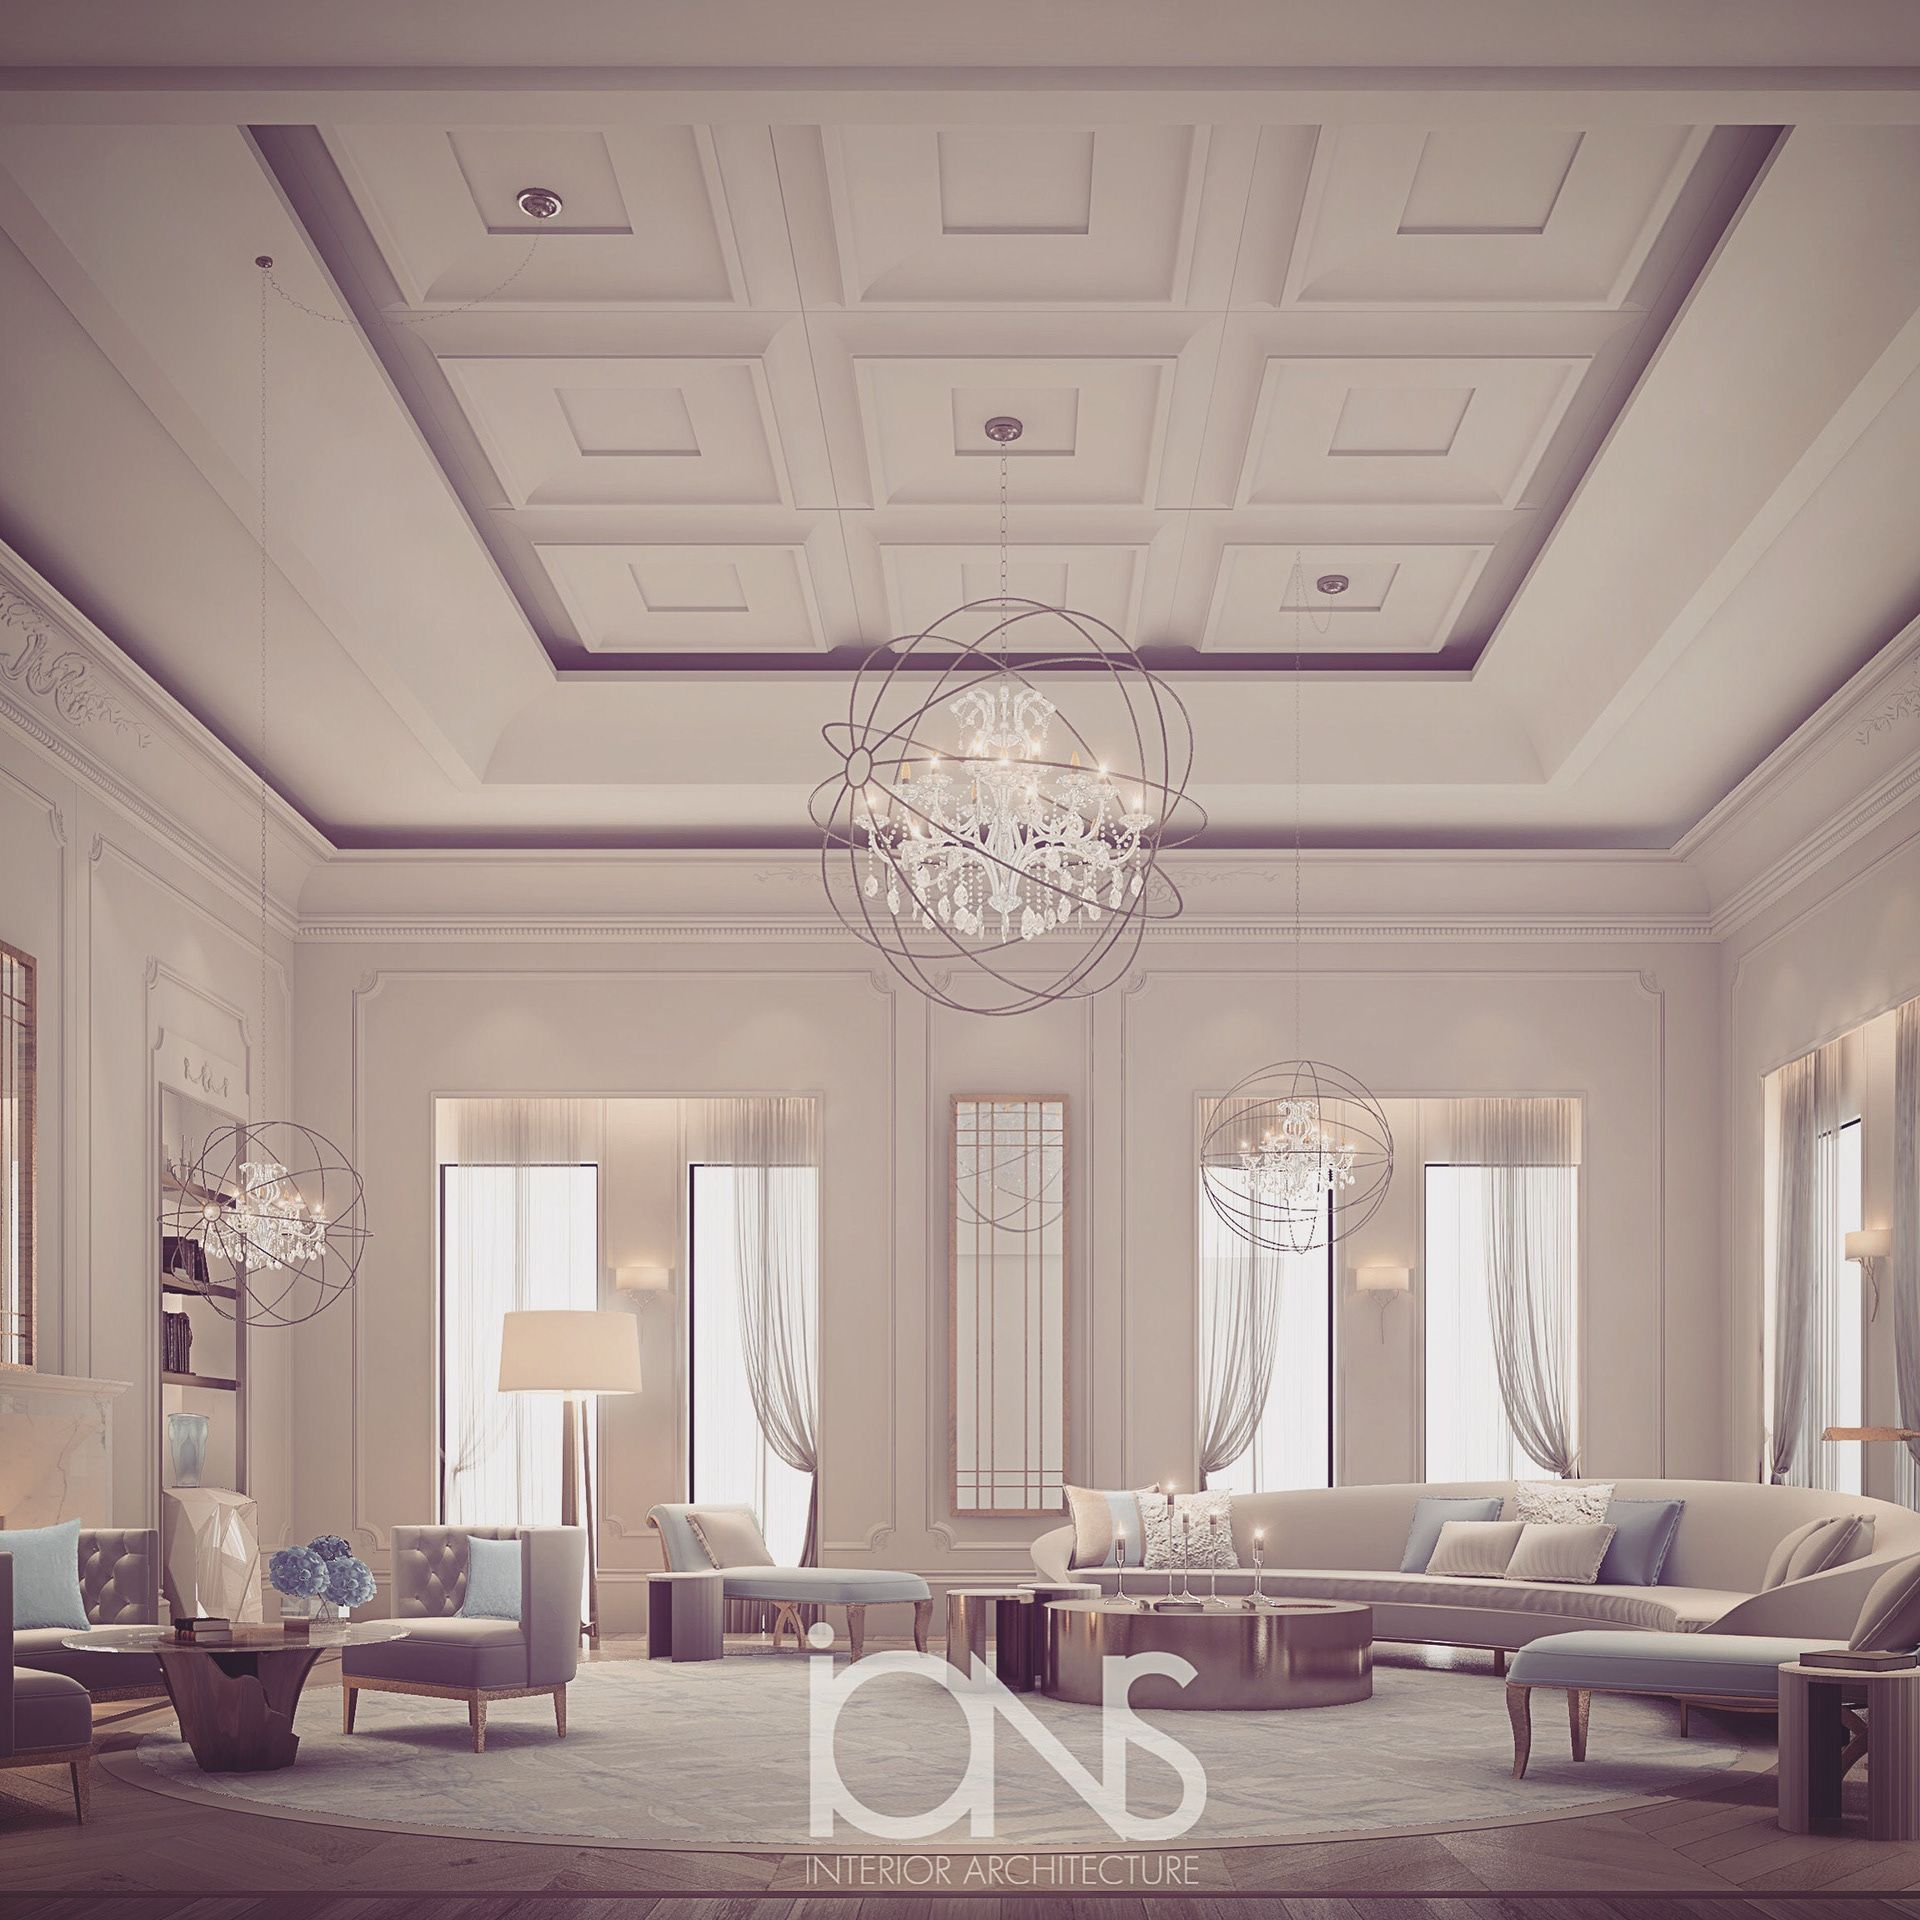 Family Home Interior Design Luxury Rooms: High-spirited And Cozy Living Room Design On Behance